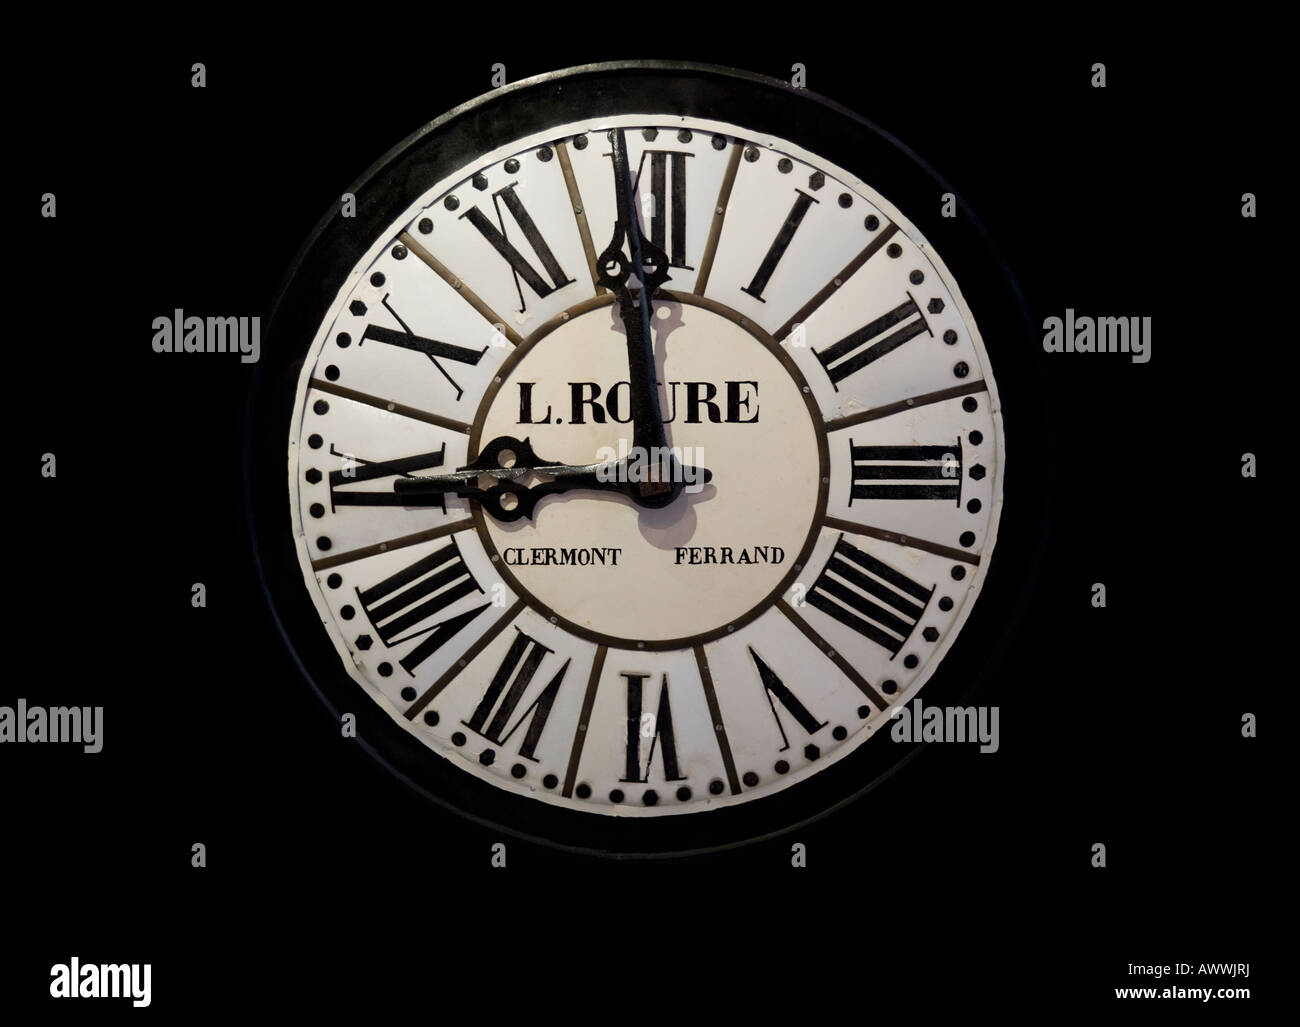 An old enamelled iron wall clock face (France). Cadran d'horloge ancienne en tôle émaillée (France). - Stock Image